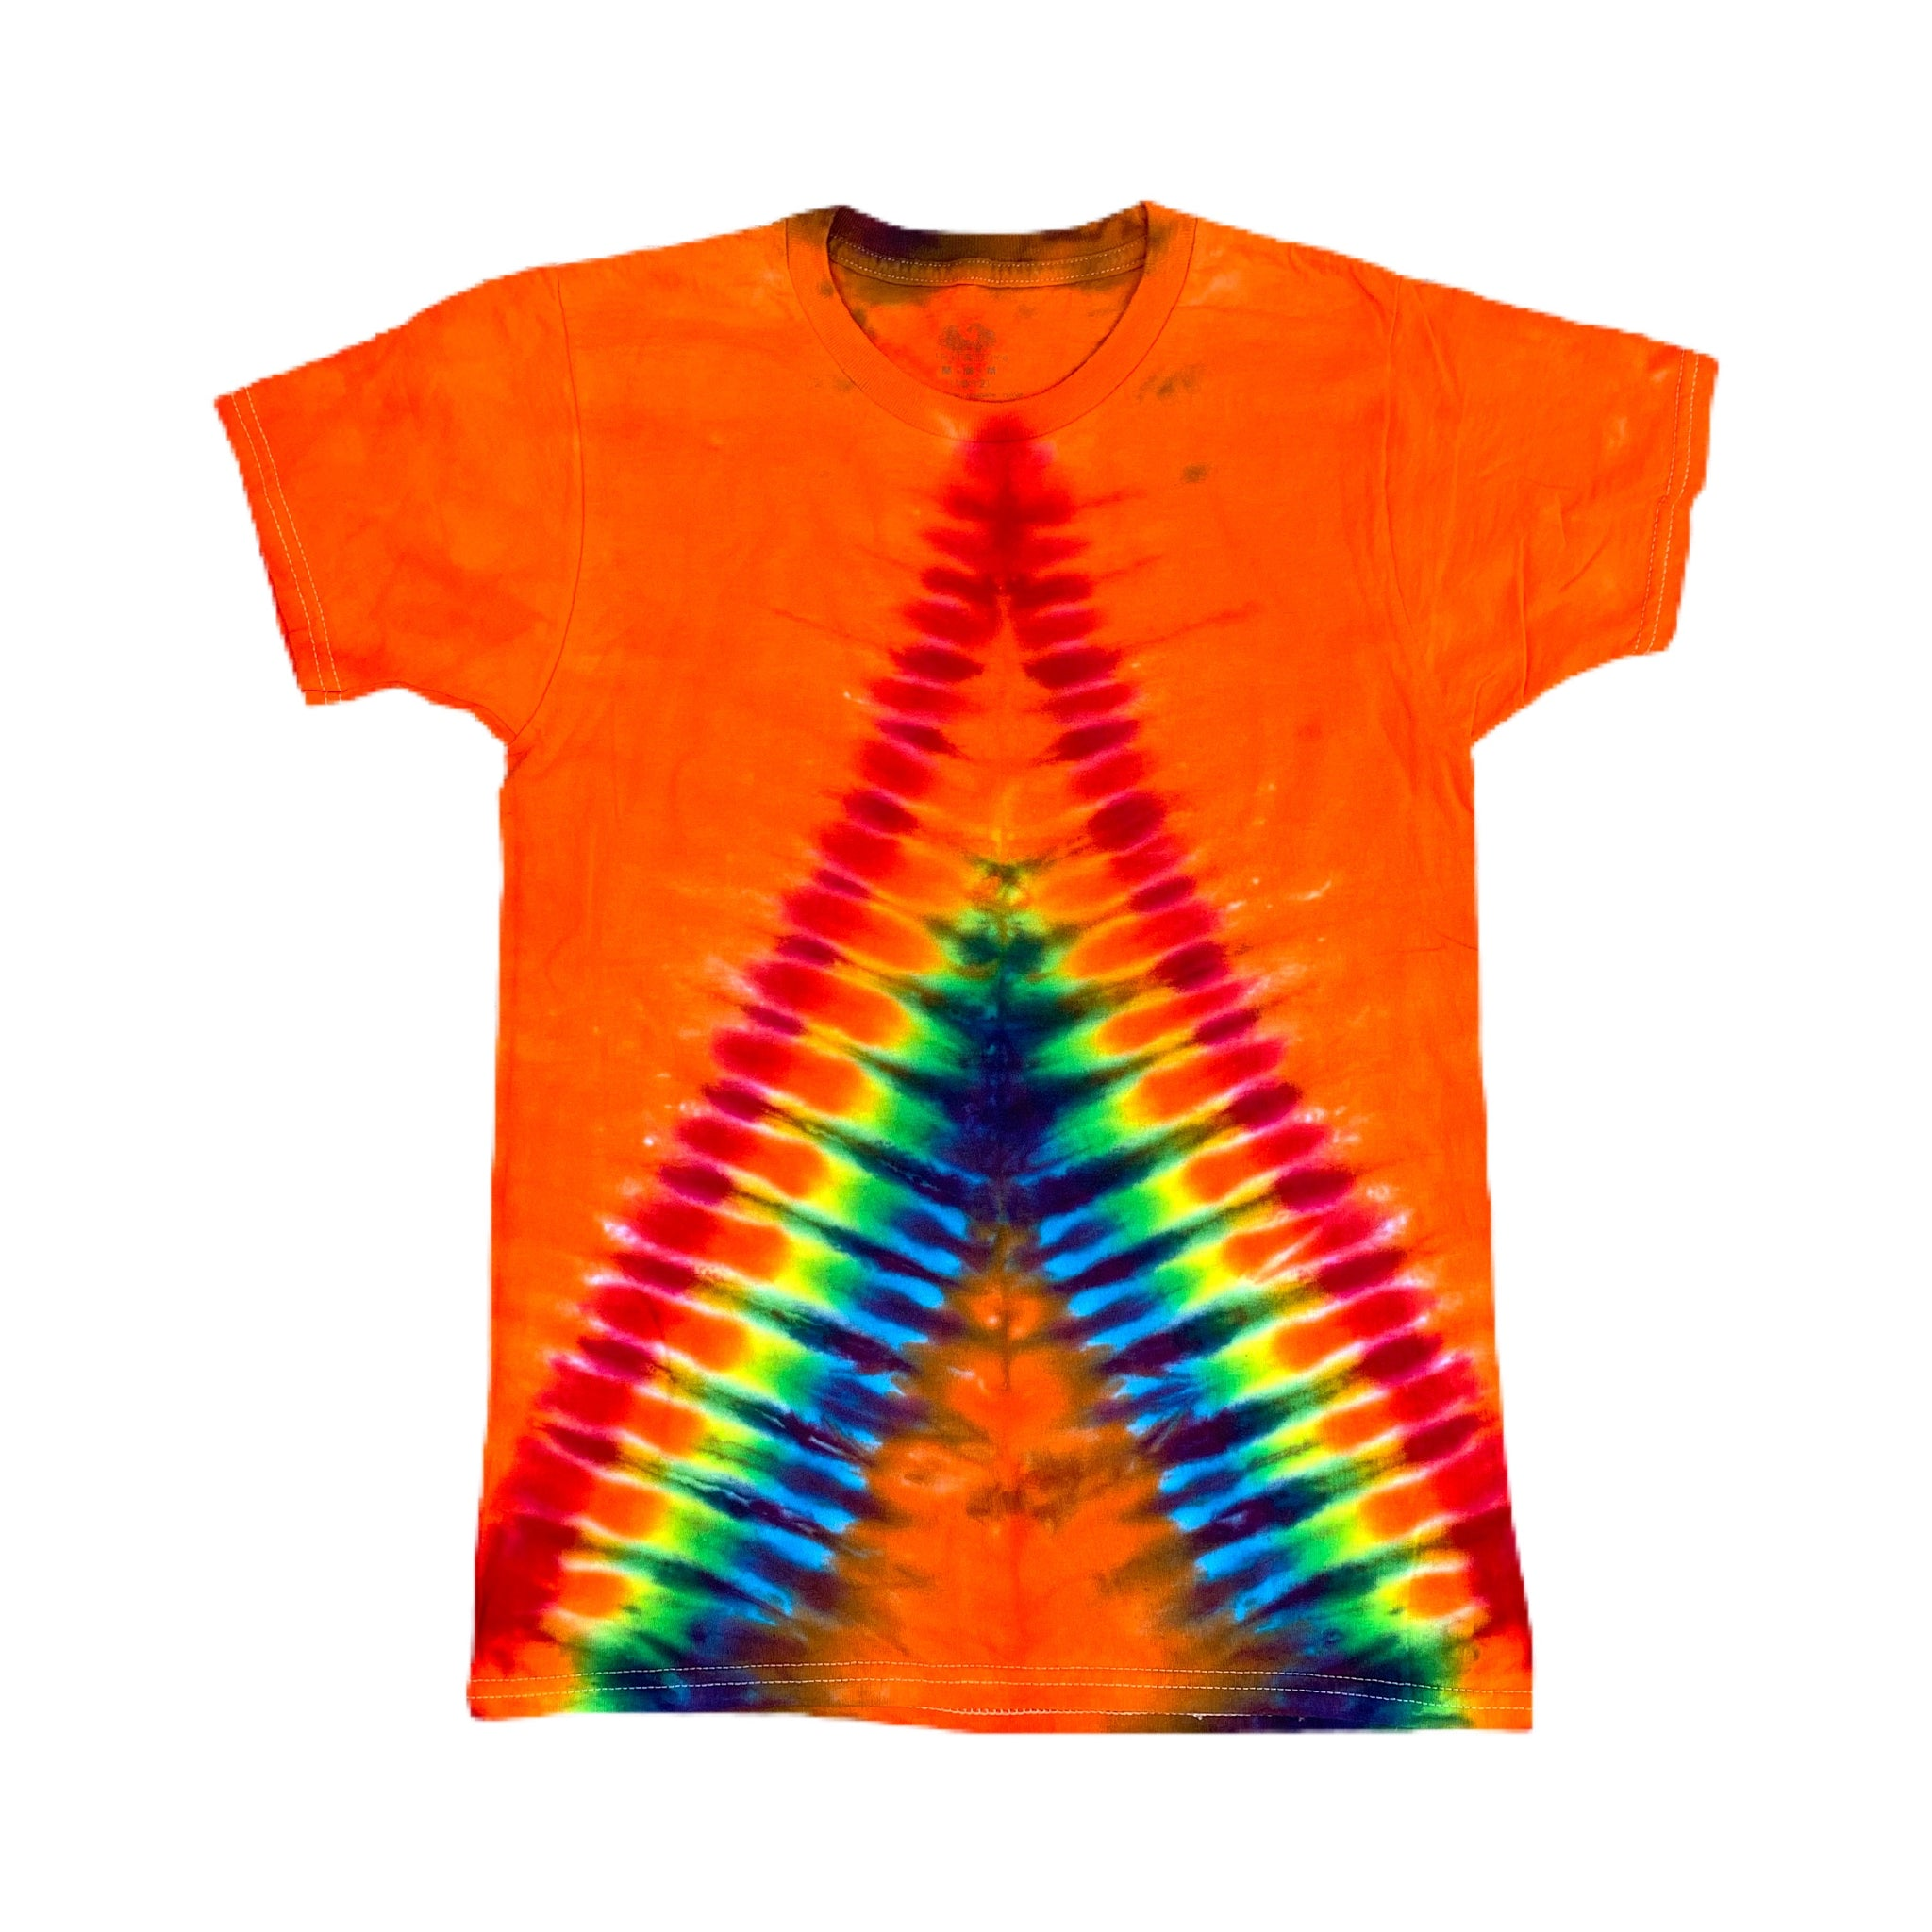 Kids Tie Dye T-shirts - Medium 10-12